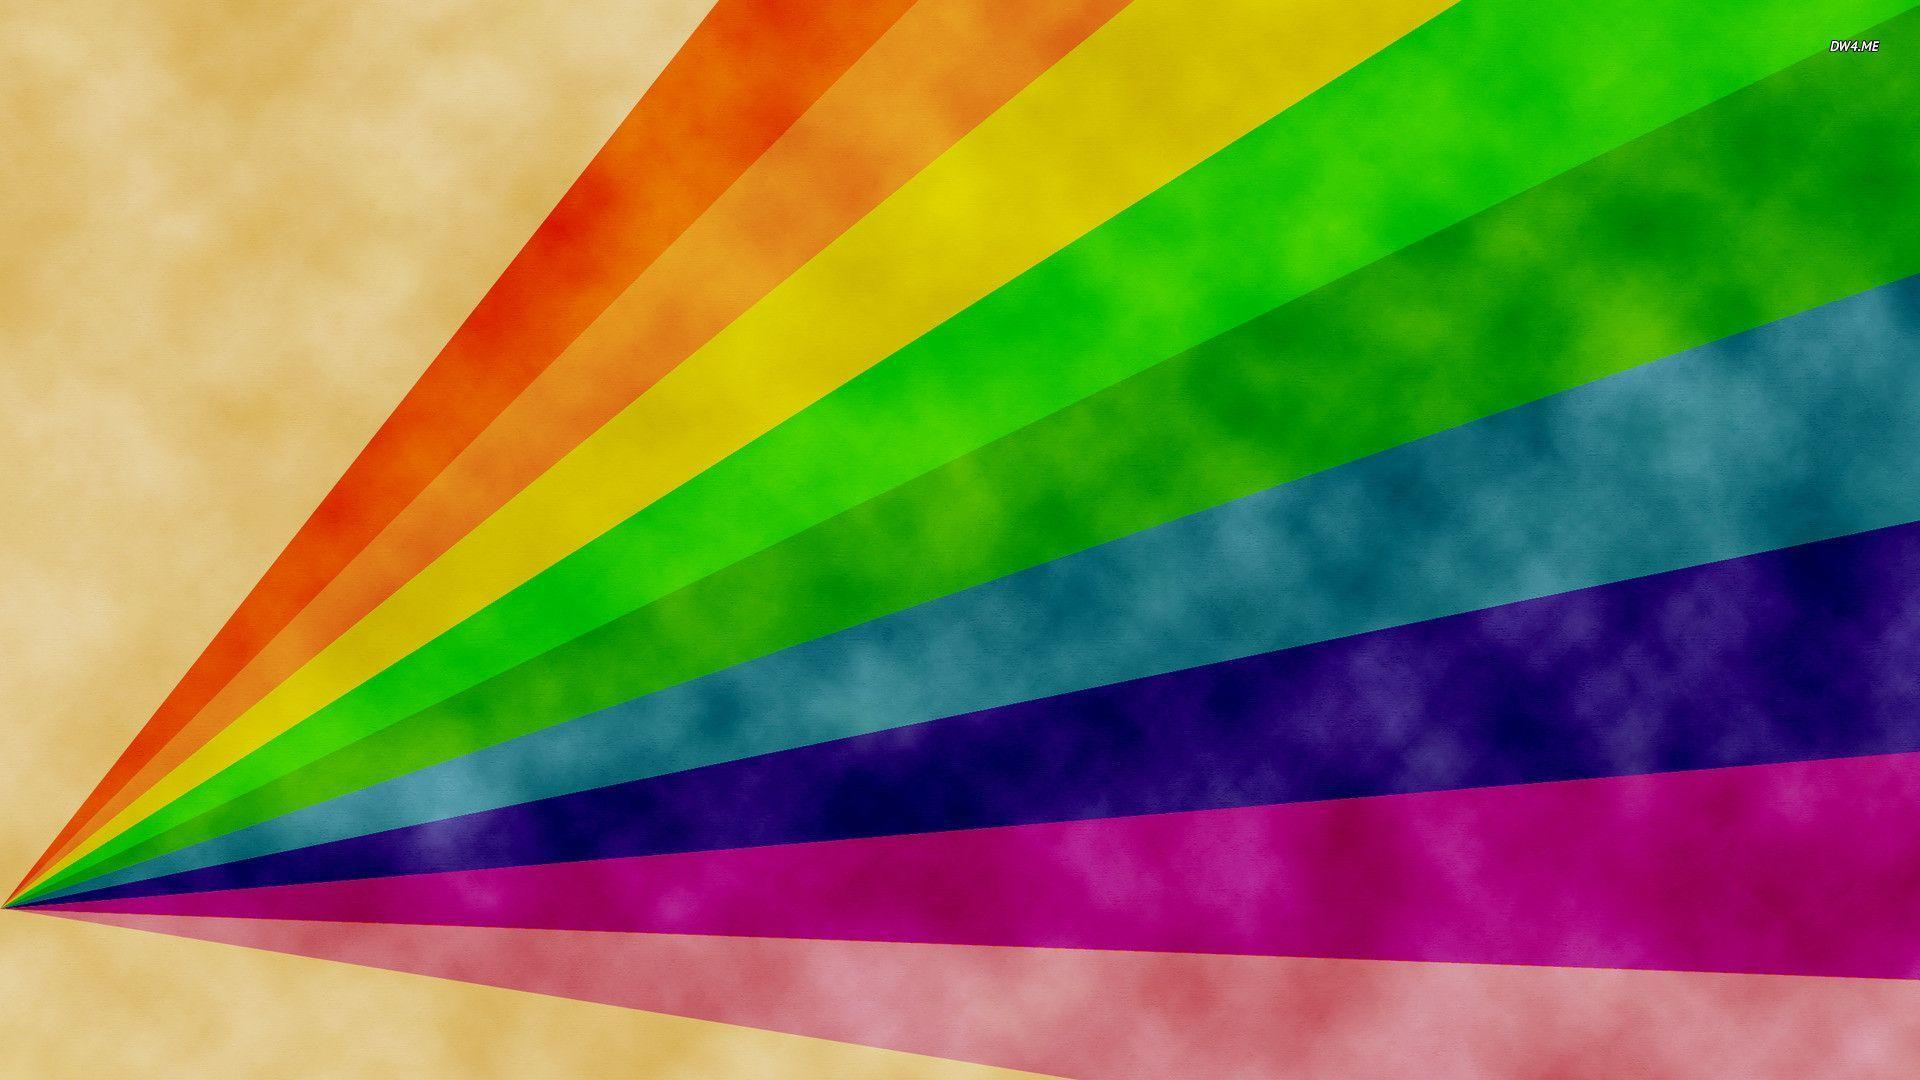 rainbow wallpapers - wallpaper cave